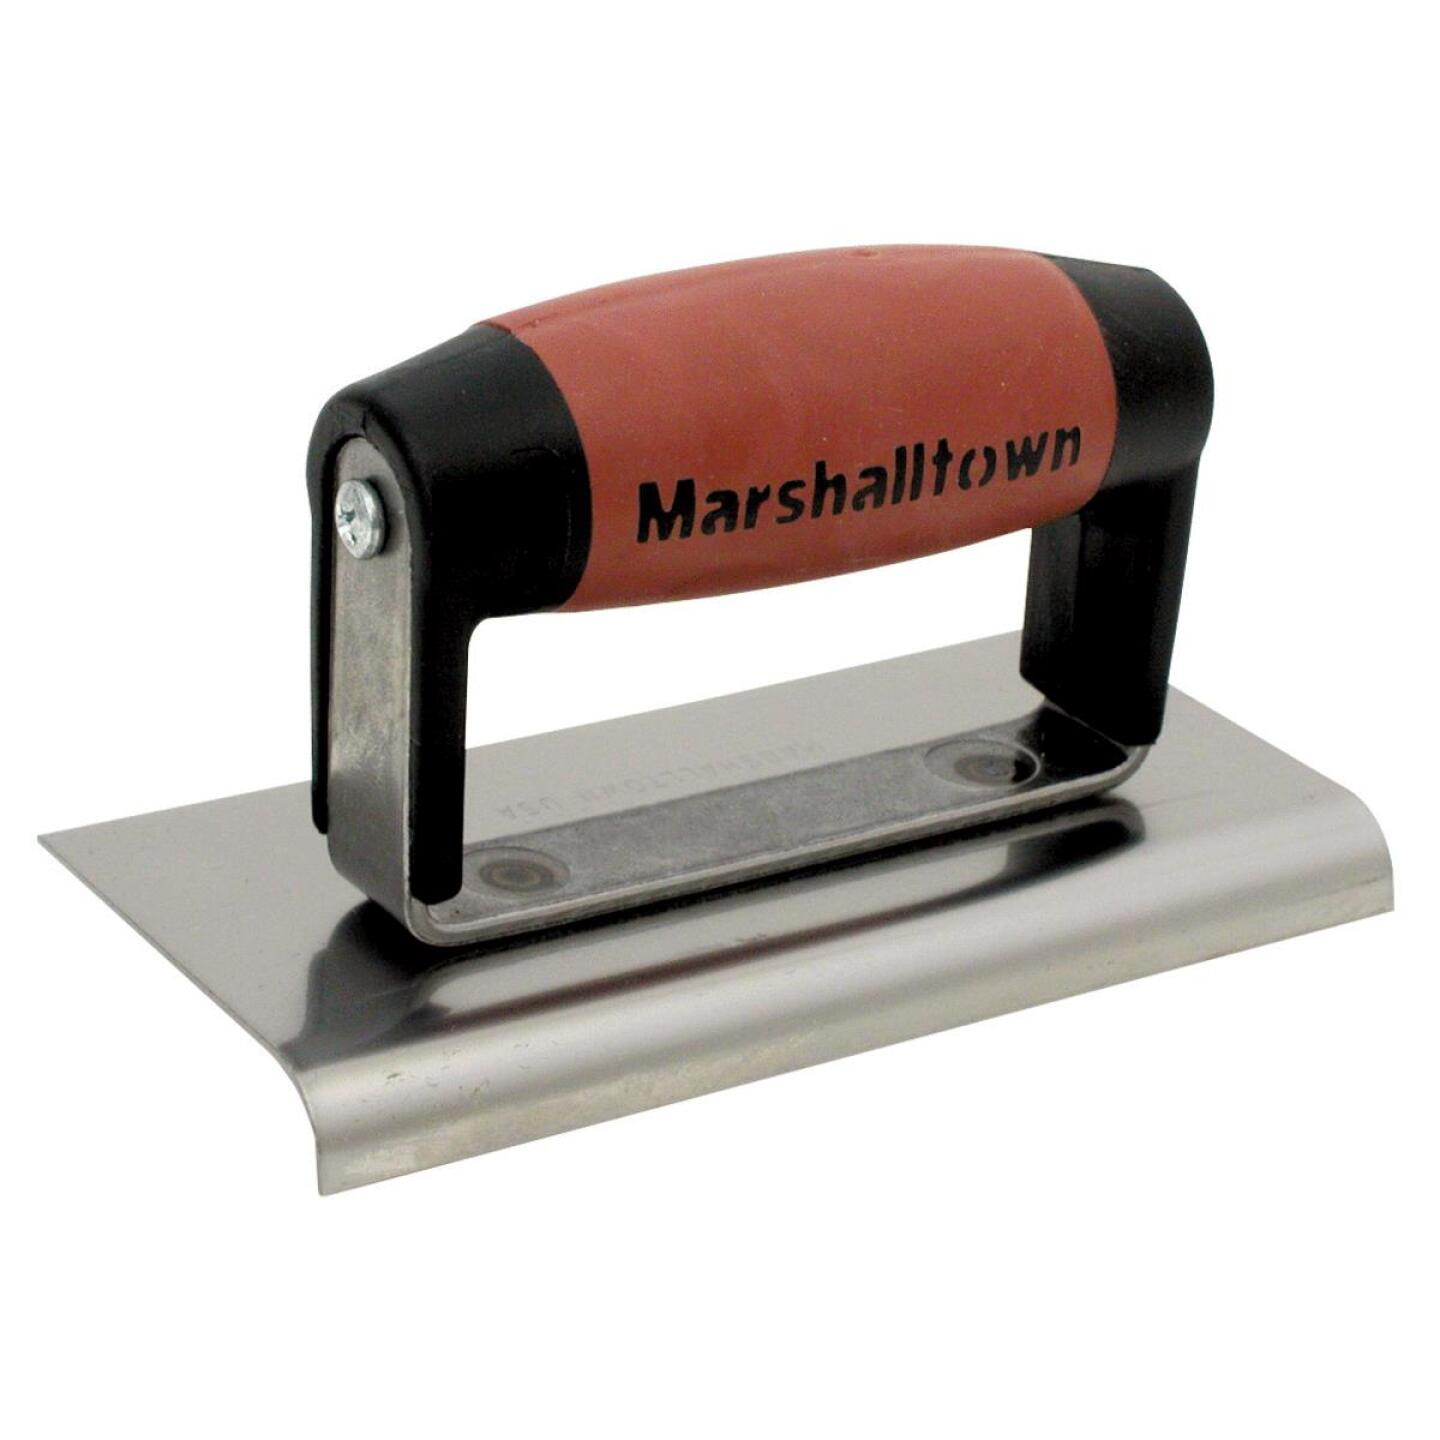 Marshalltown 6 In. x 3 In. Straight End Cement Edger Image 1